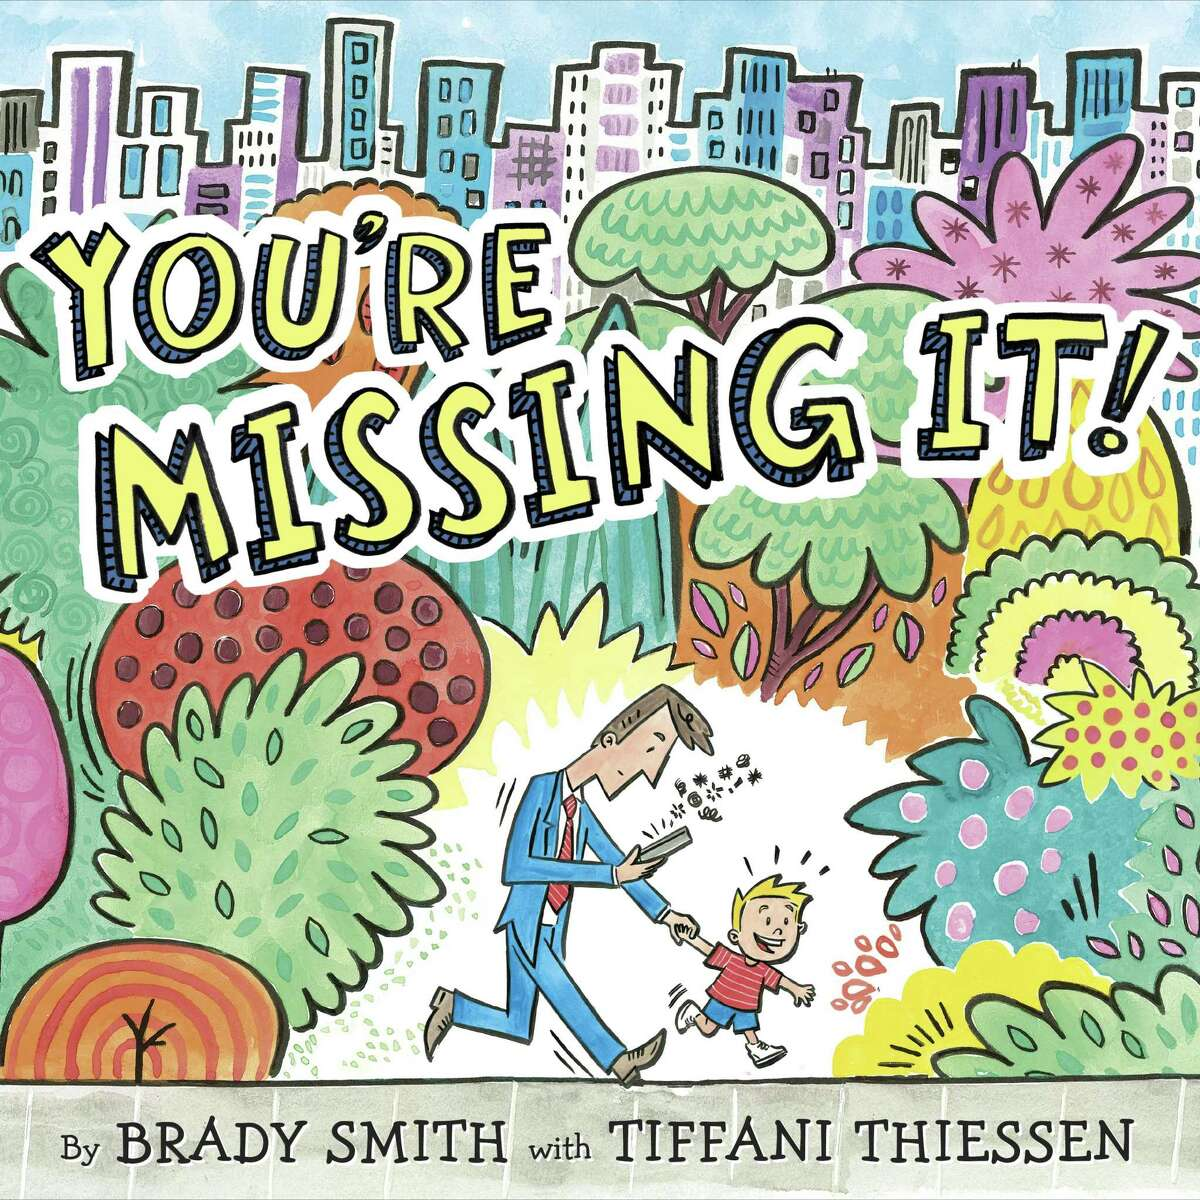 """CHILDREN'S BOOKS: Tiffani Thiessen and Brady Smith have co-authored a children's book, """"You're Missing It."""" (Penguin Random House, $17.99)"""